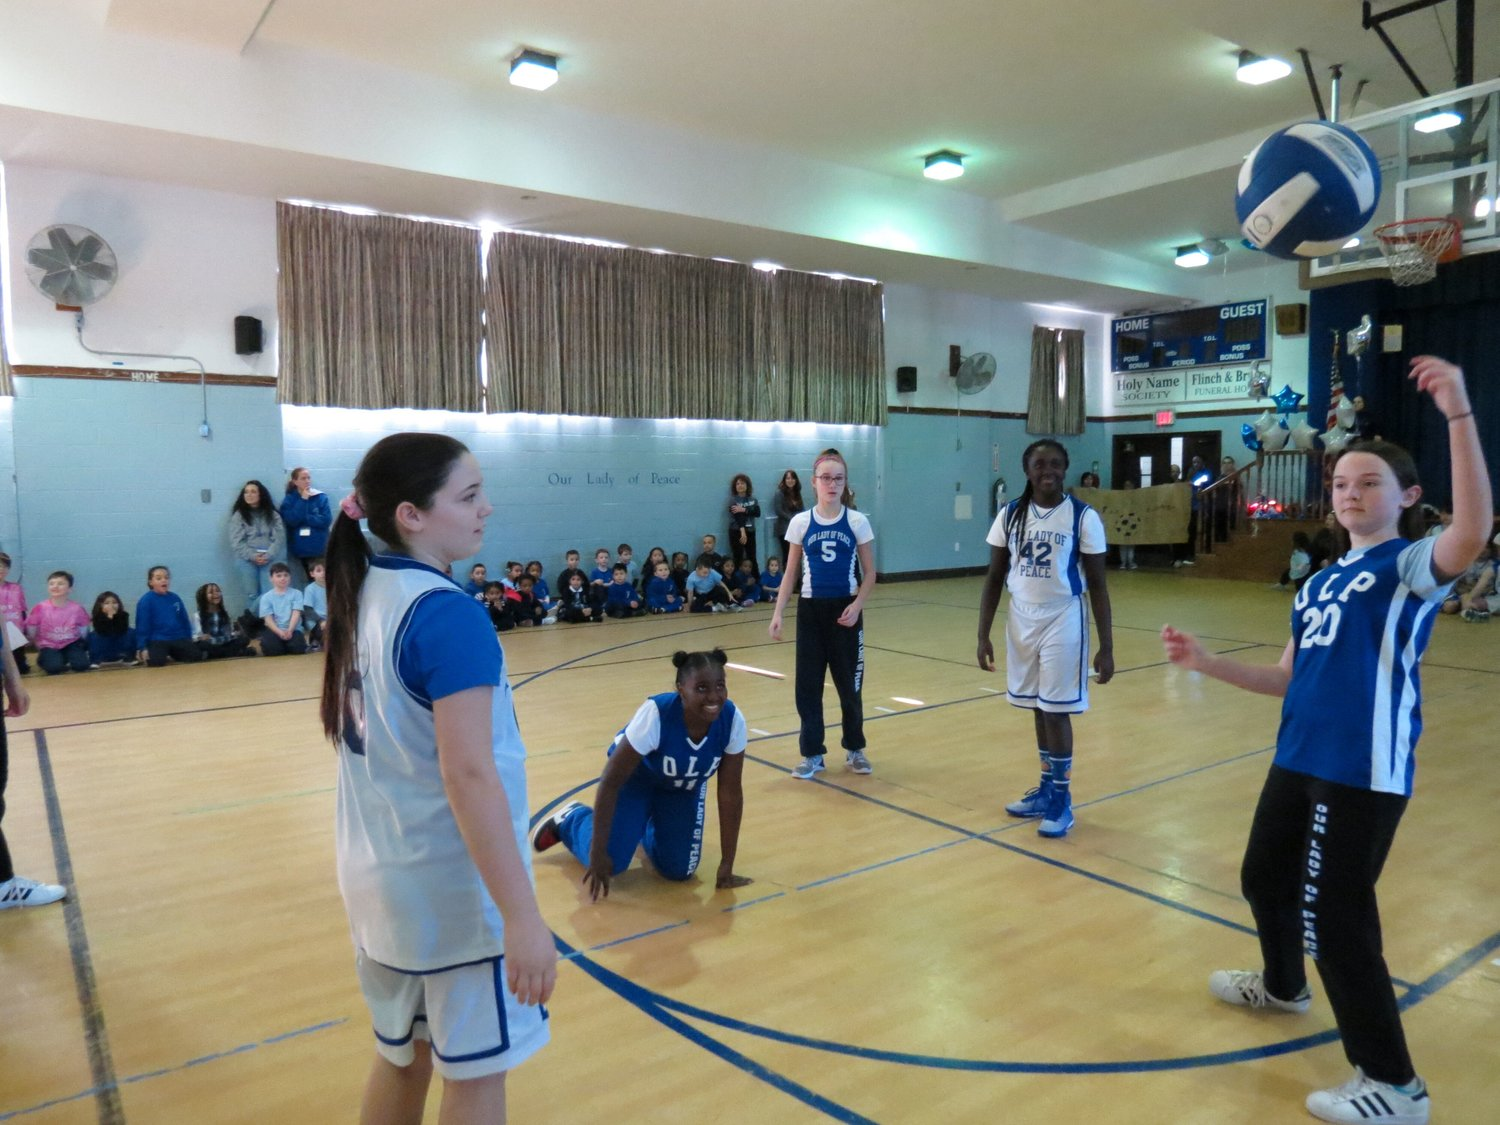 Students also played sports and showed their school pride during Spirit Day.